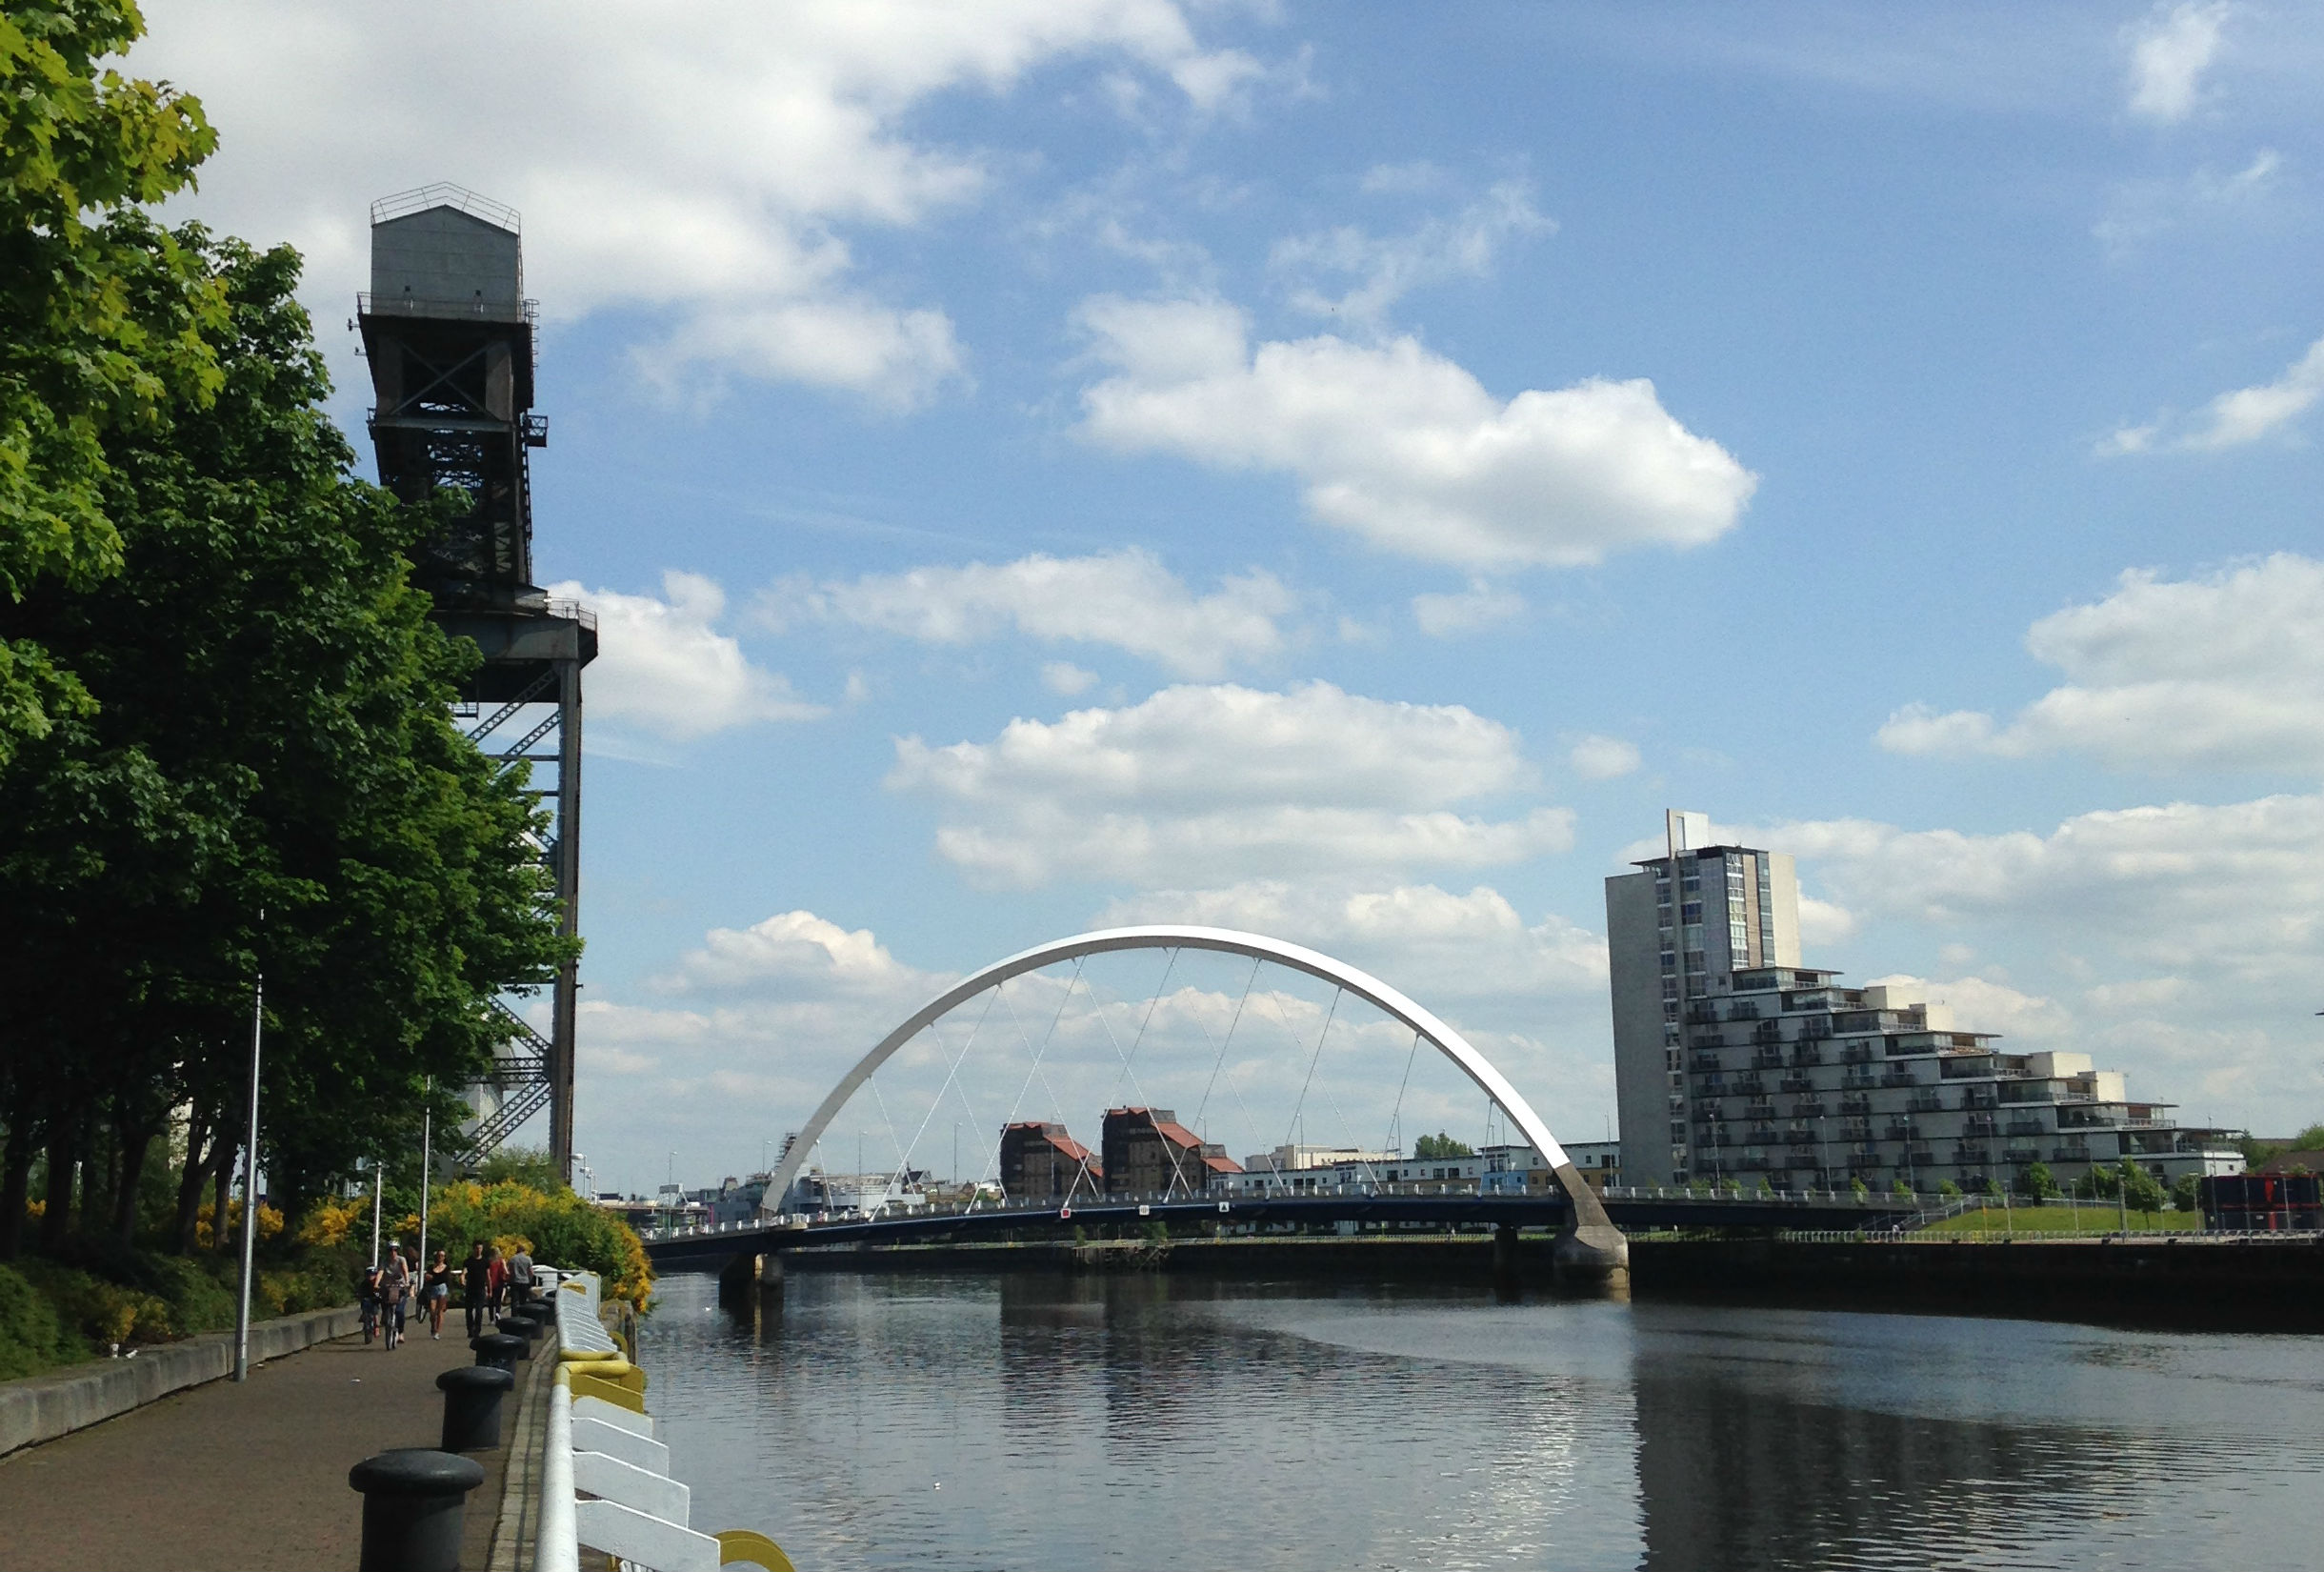 Clydeside & a Night at the Hilton, Glasgow